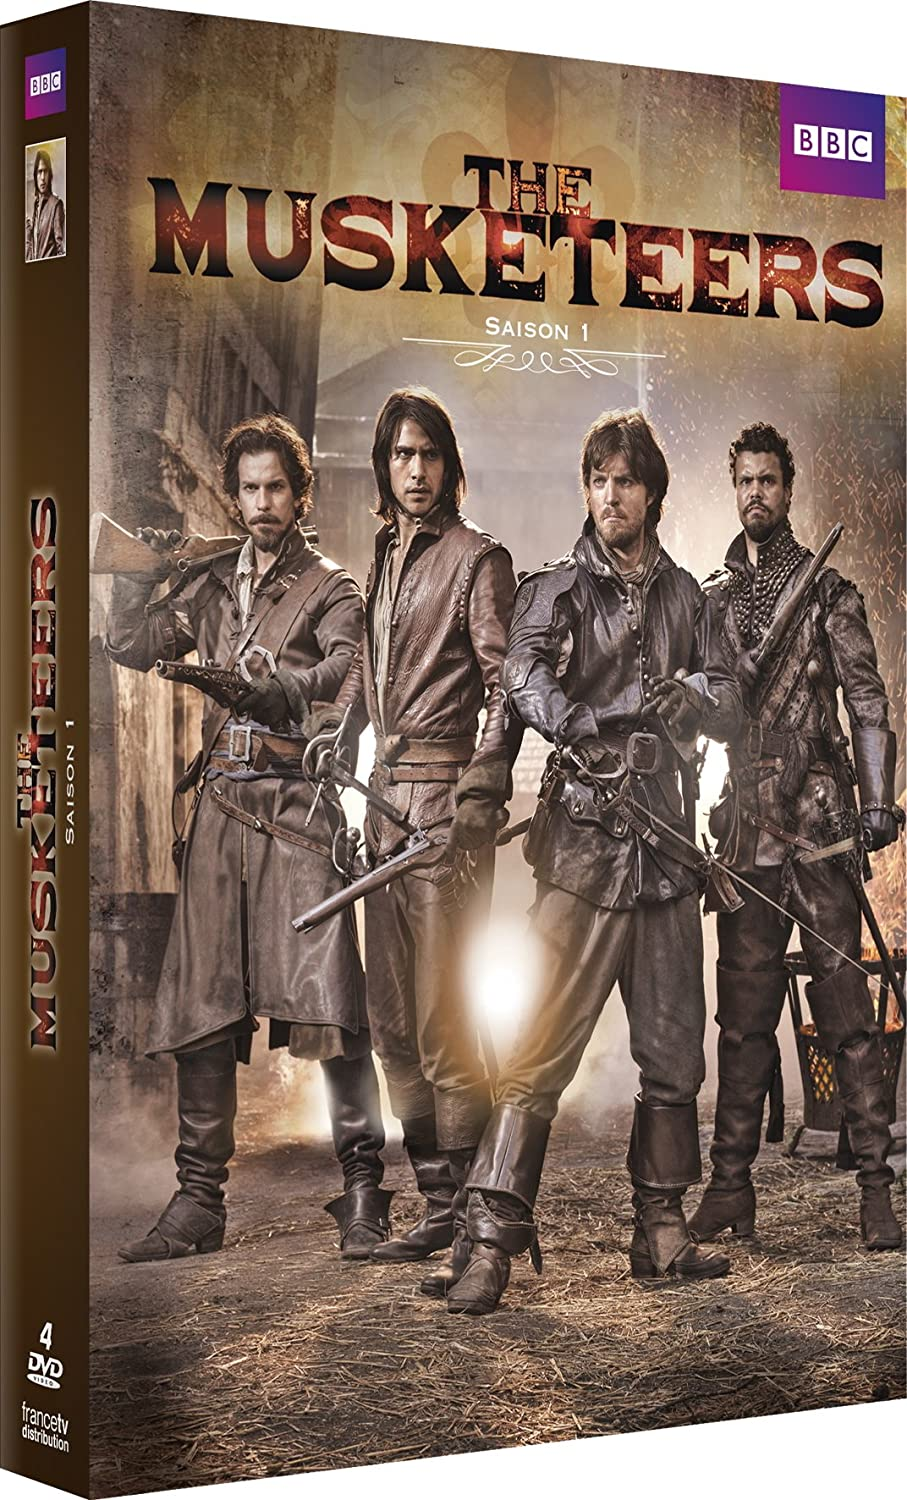 The Musketeers BBC saison 1 - Page 2 81KmyzMO25L._SL1500_